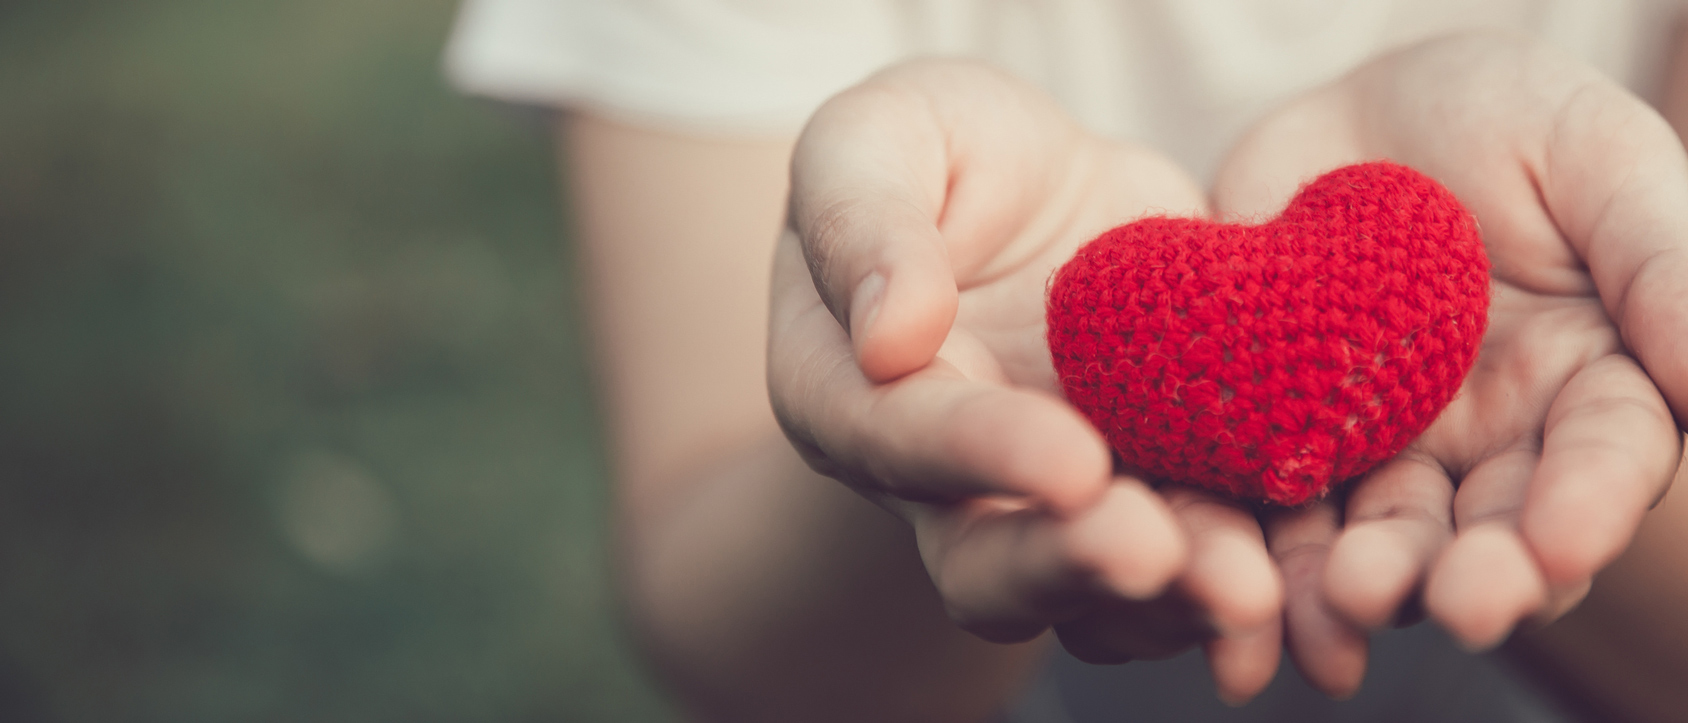 A crocheted heart being held out in cupped hands.